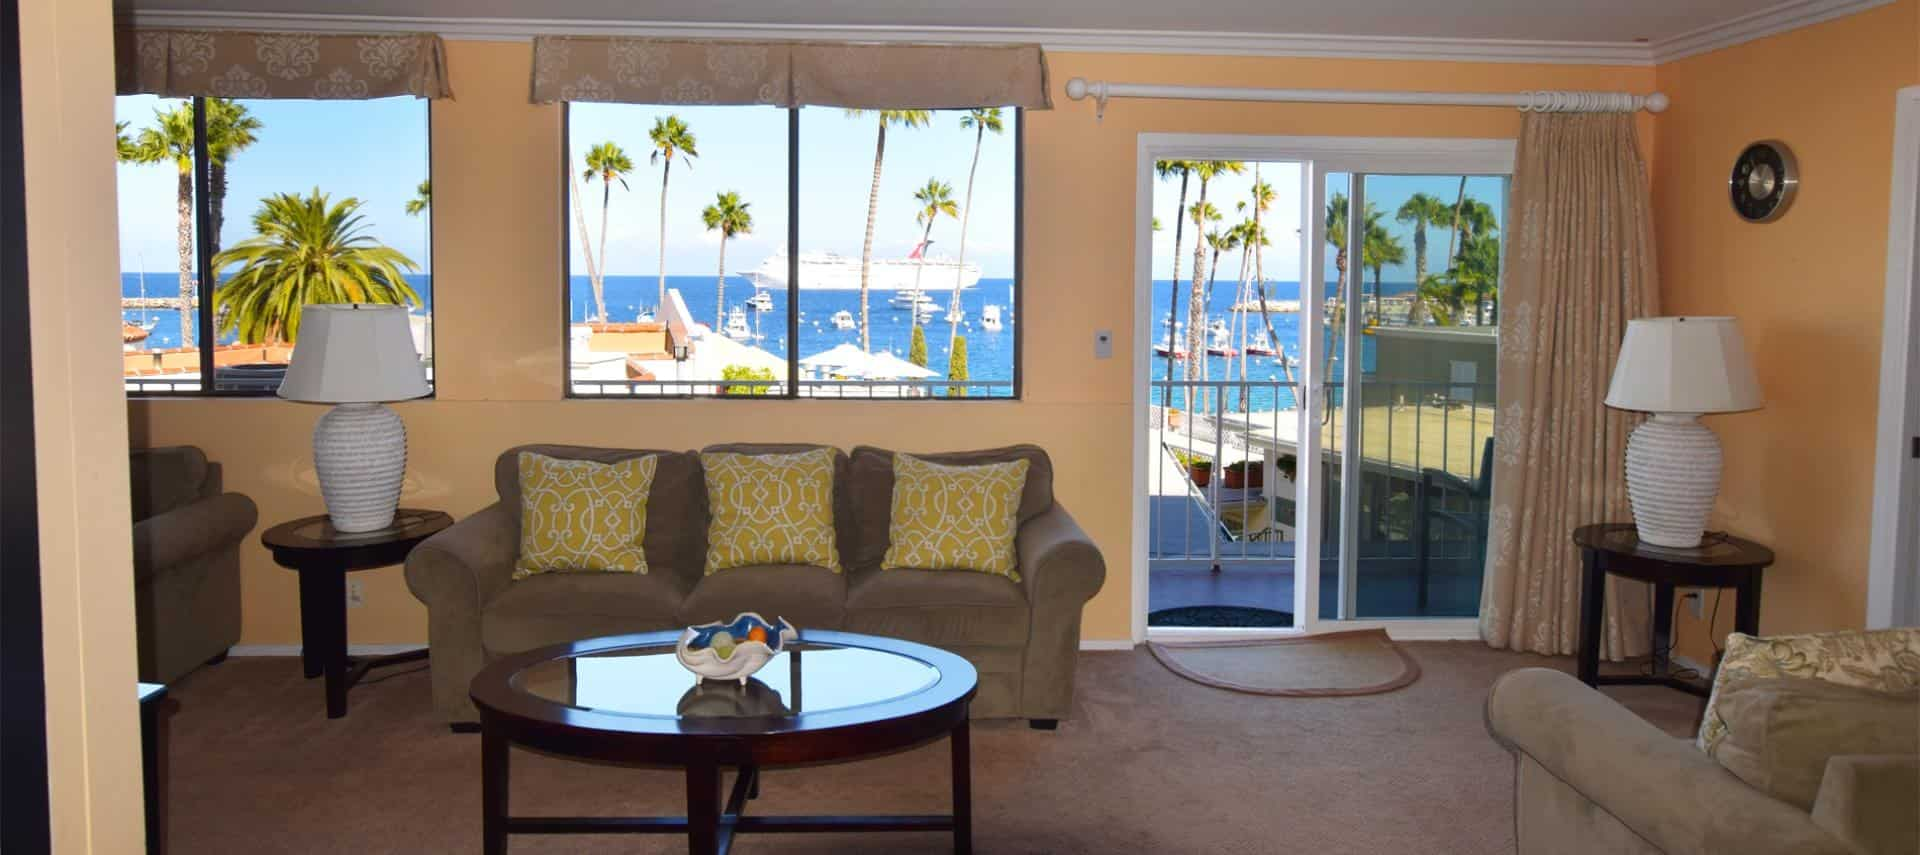 Bedroom with light brown couch with yellow pillows, wood and glass coffee table, end table with white lamp, and amazing view of the ocean and palm trees